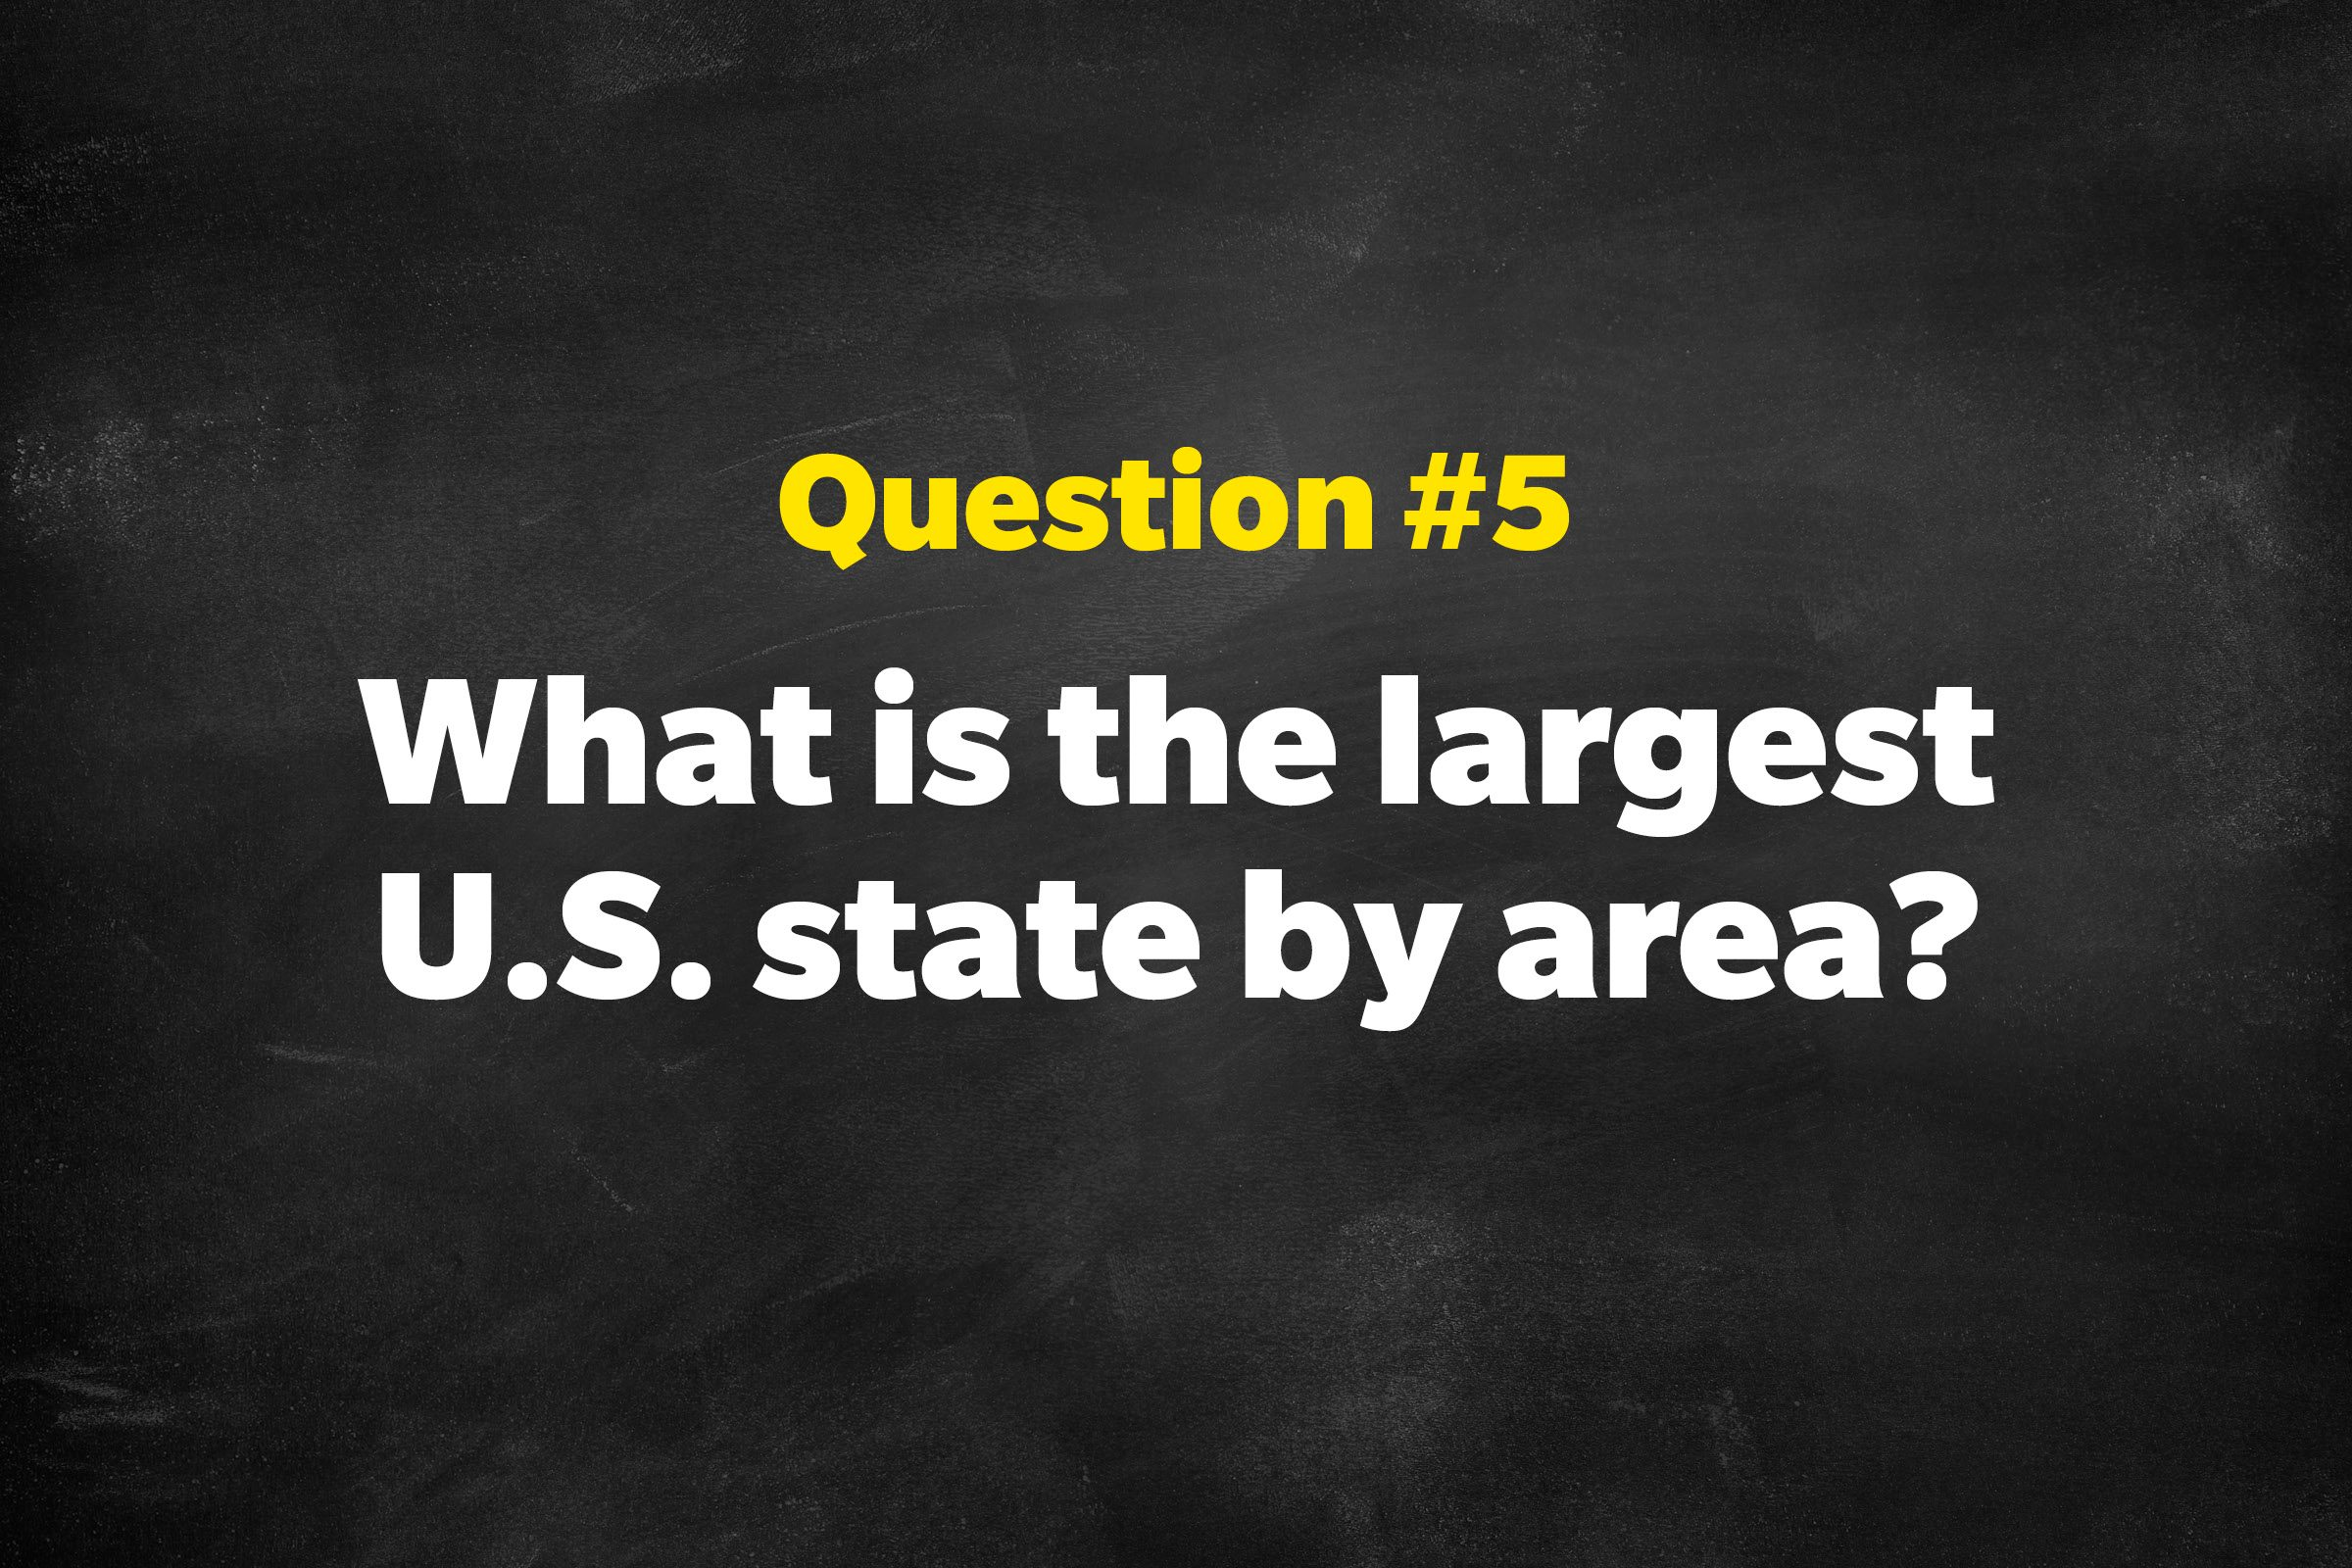 Question #5: What is the largest U.S. state by area?